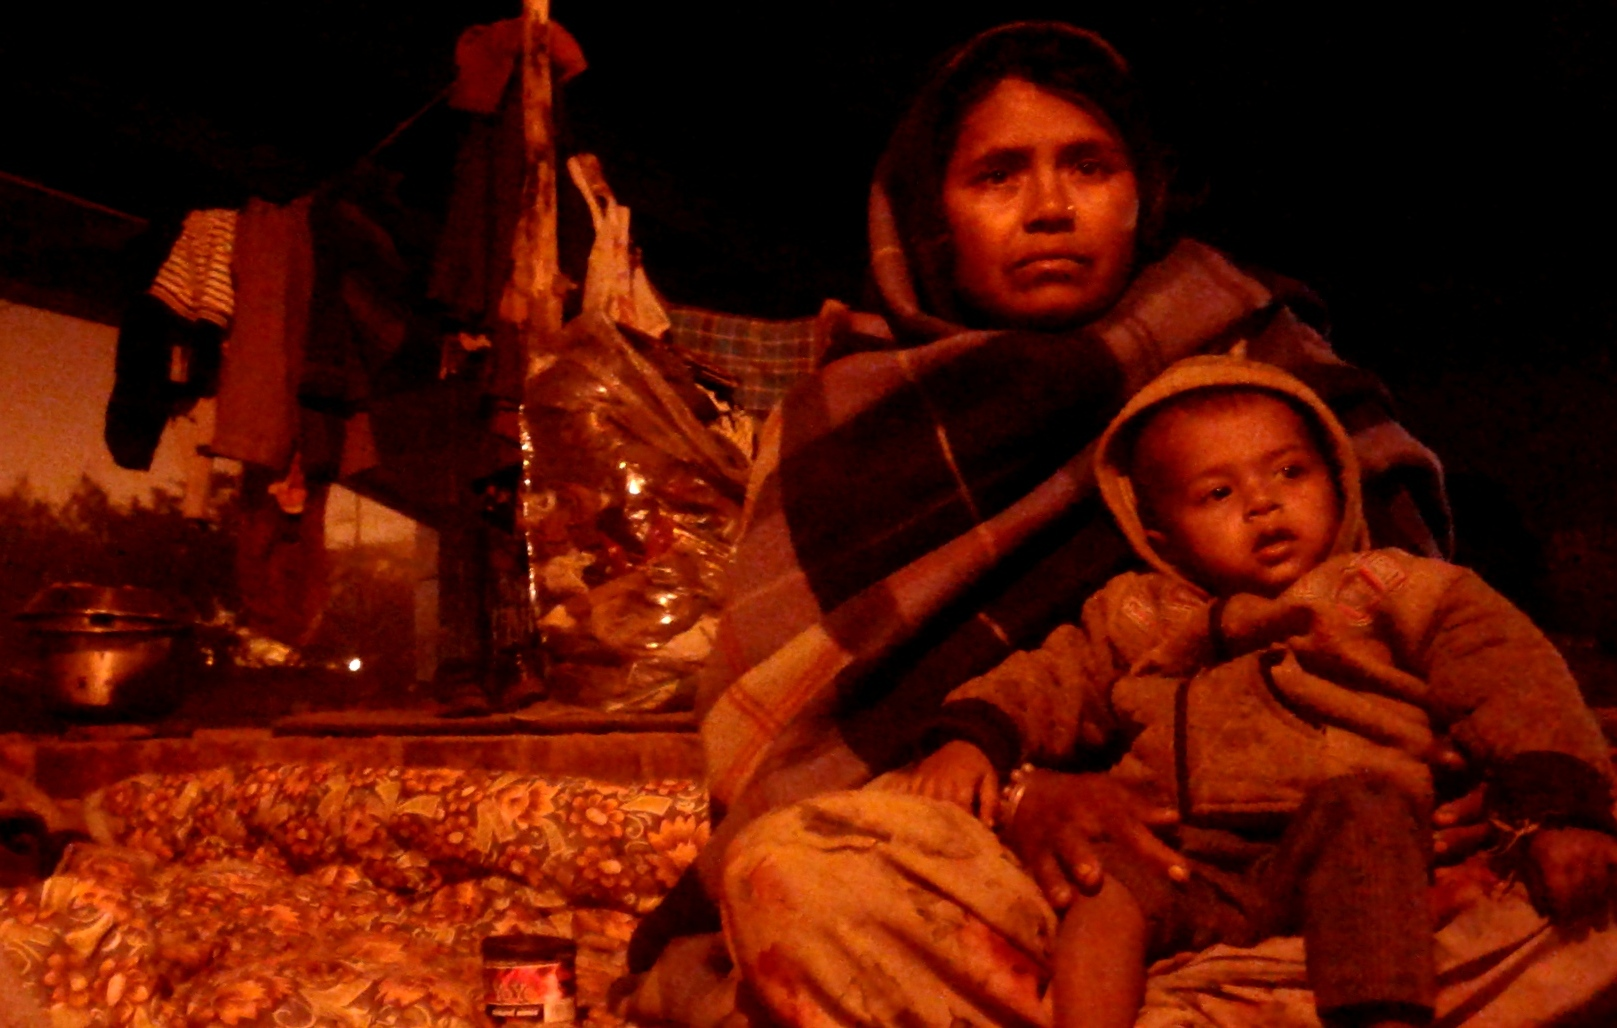 A homeless woman sitting with a child in her lap under a flyover at night.